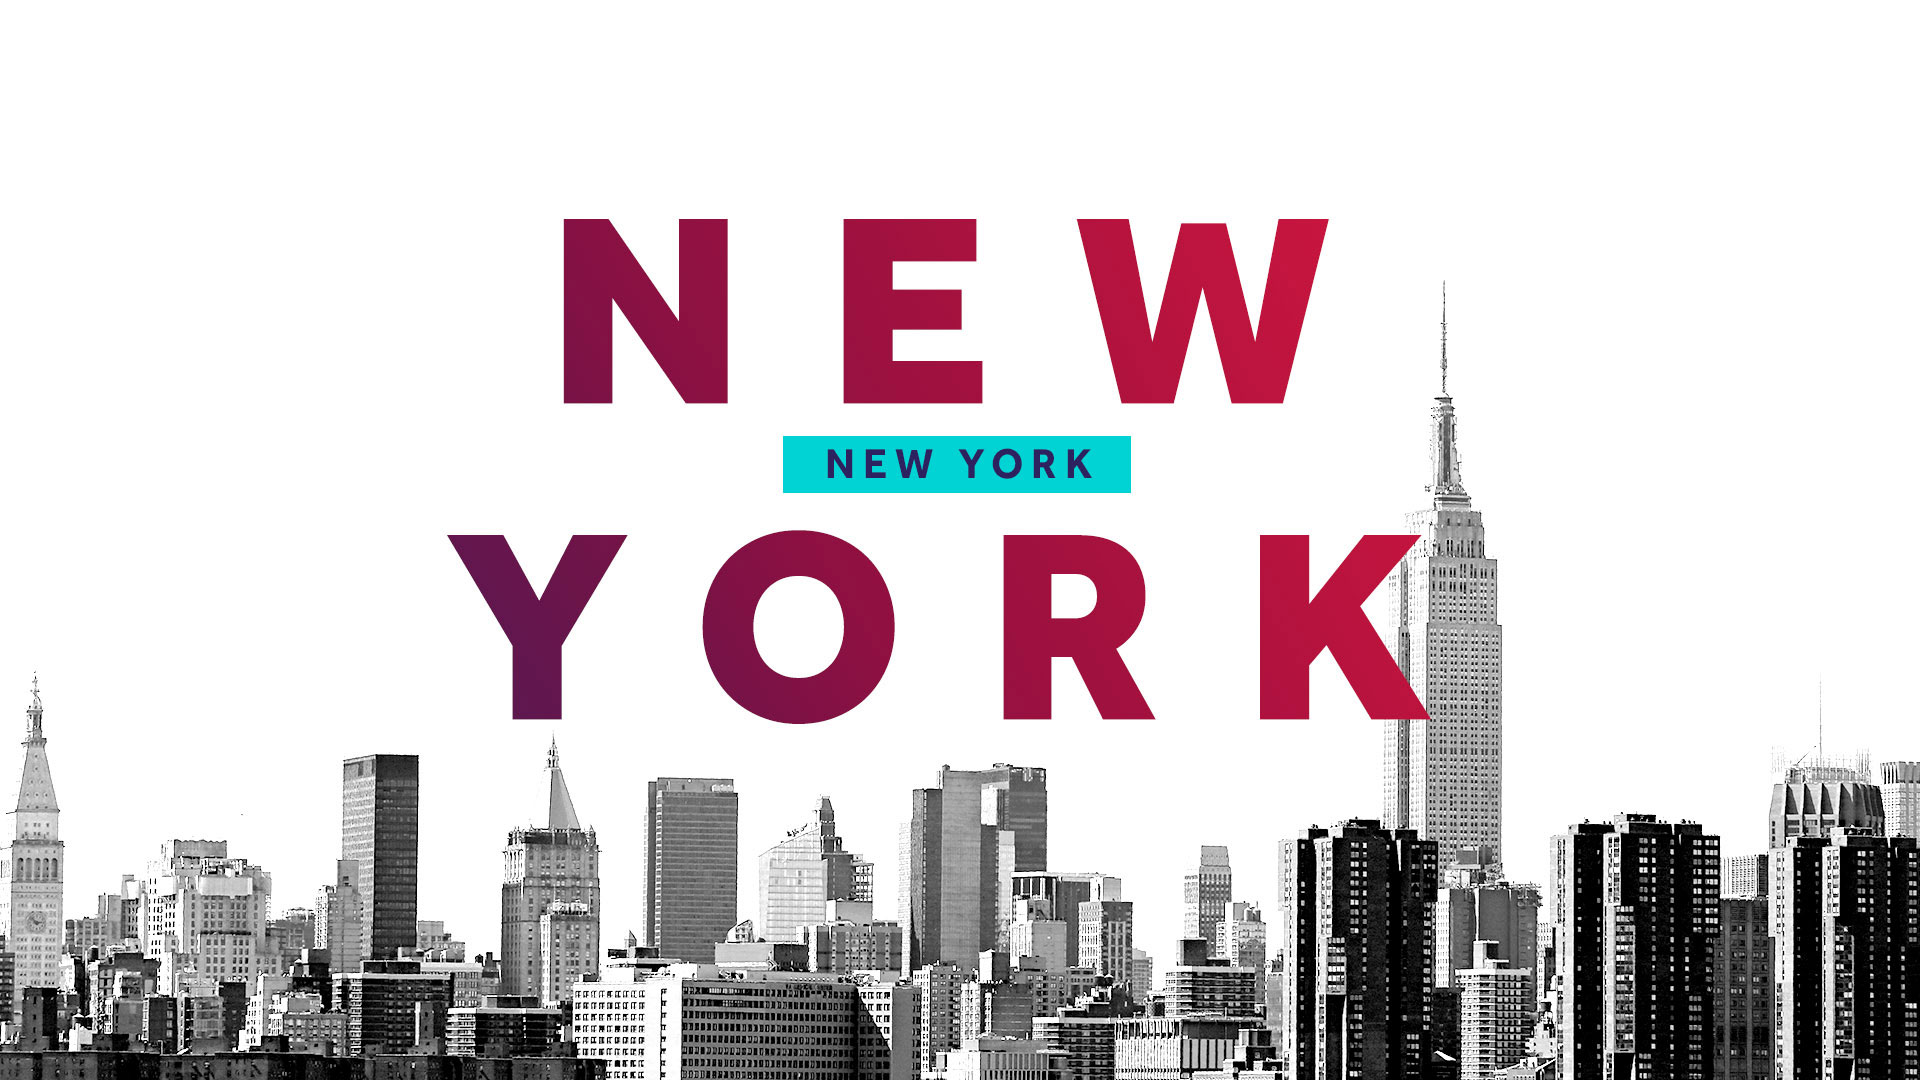 New York typography design for a motion graphics toolkit